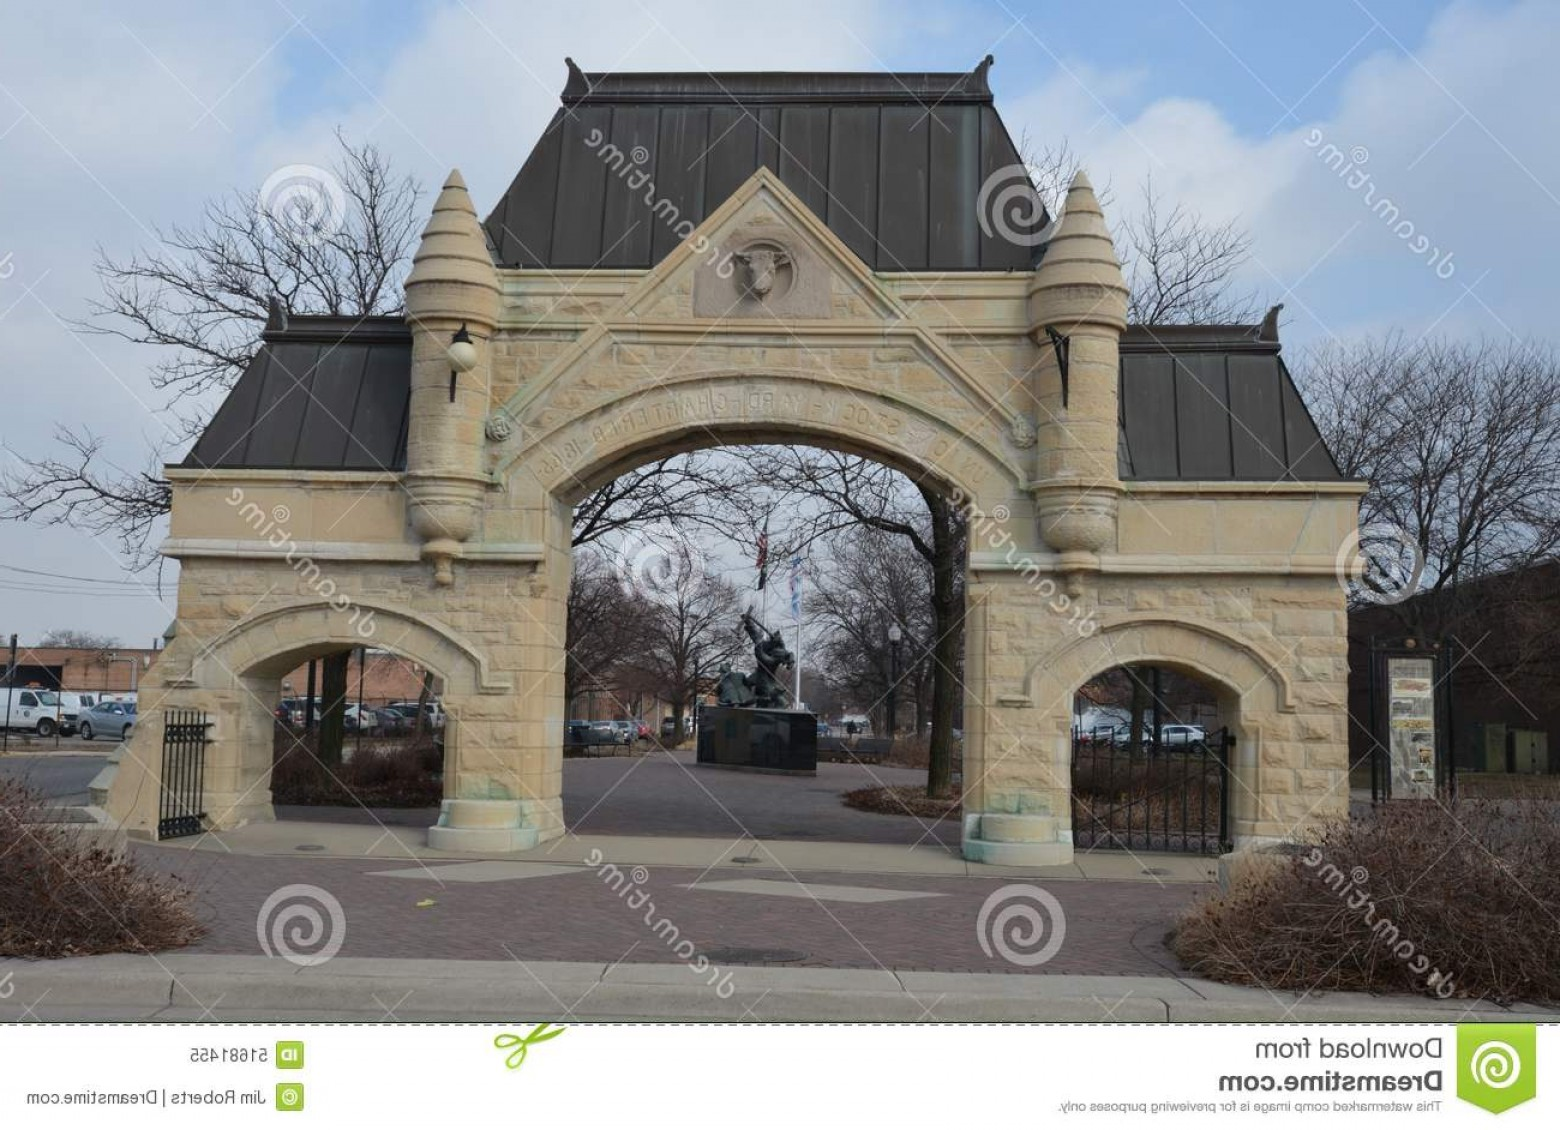 Arch Vector Illinios: Editorial Image Union Stock Yard Gate Early Spring Picture Preserved Entrance Chicago Illinois Stone Arch Was Image